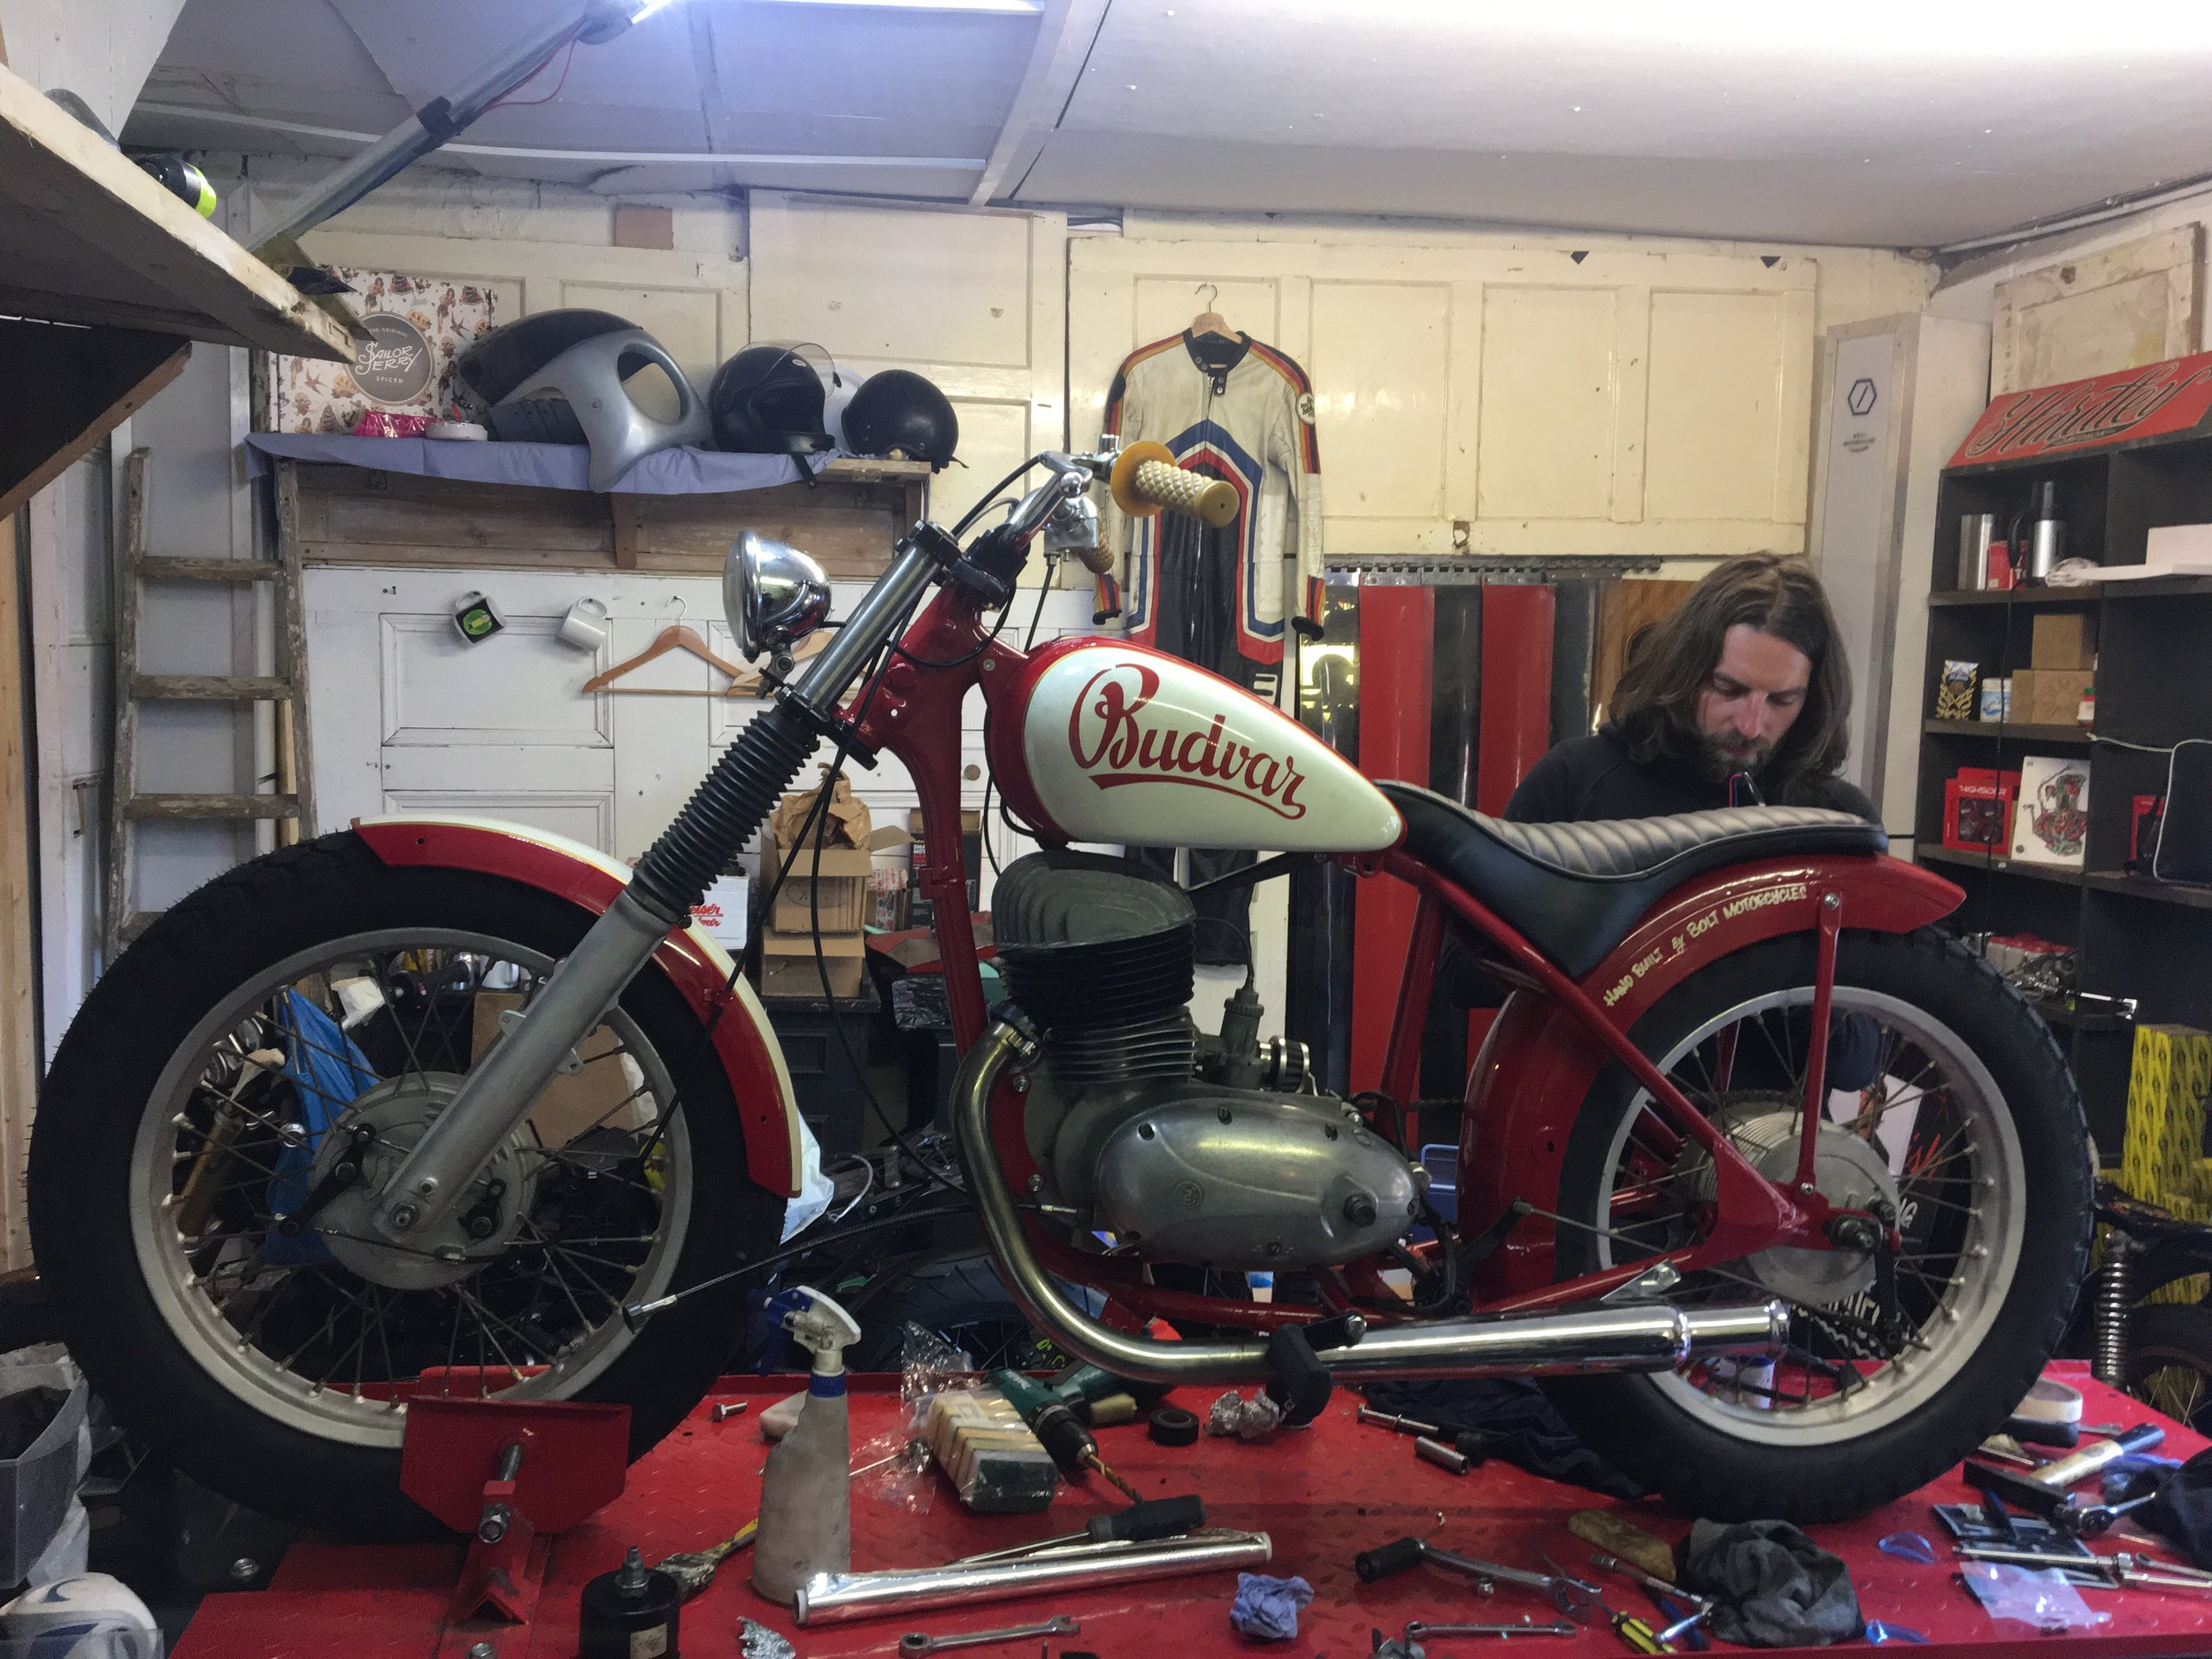 Simone worked tirelessly to complete the Jawa build